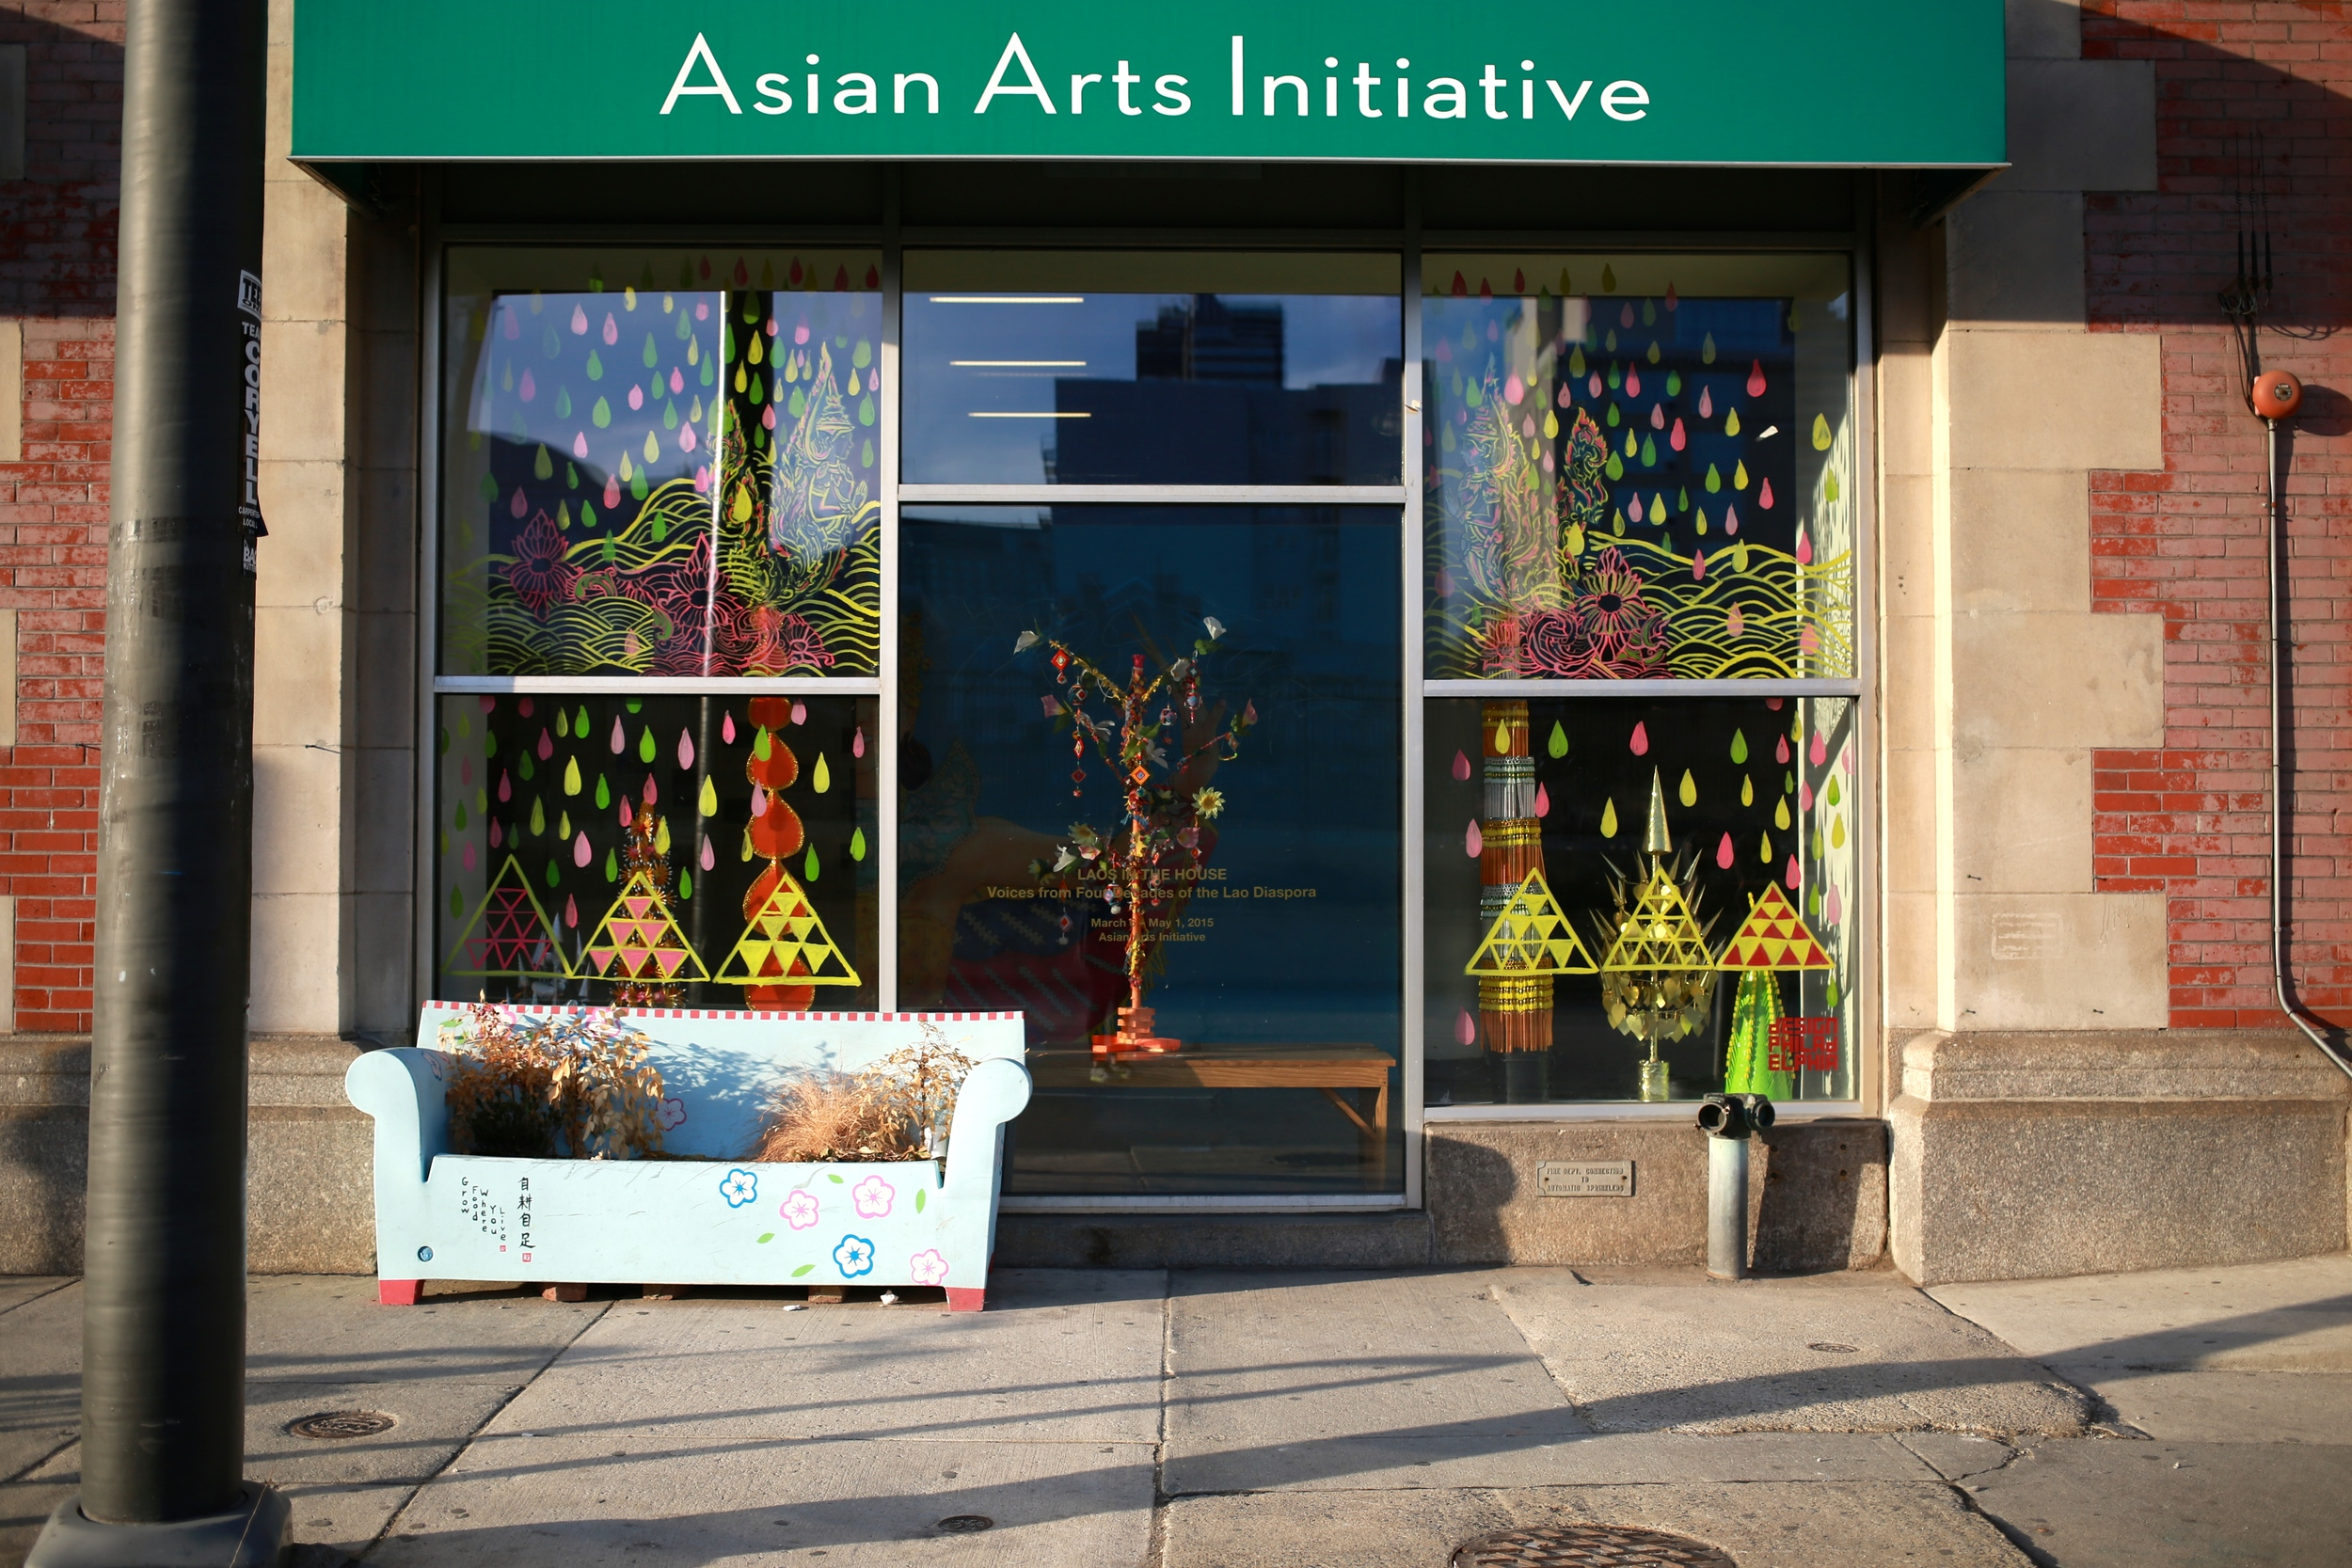 Front view of Asian Arts Initiative gallery window at Asian Arts Initiative.